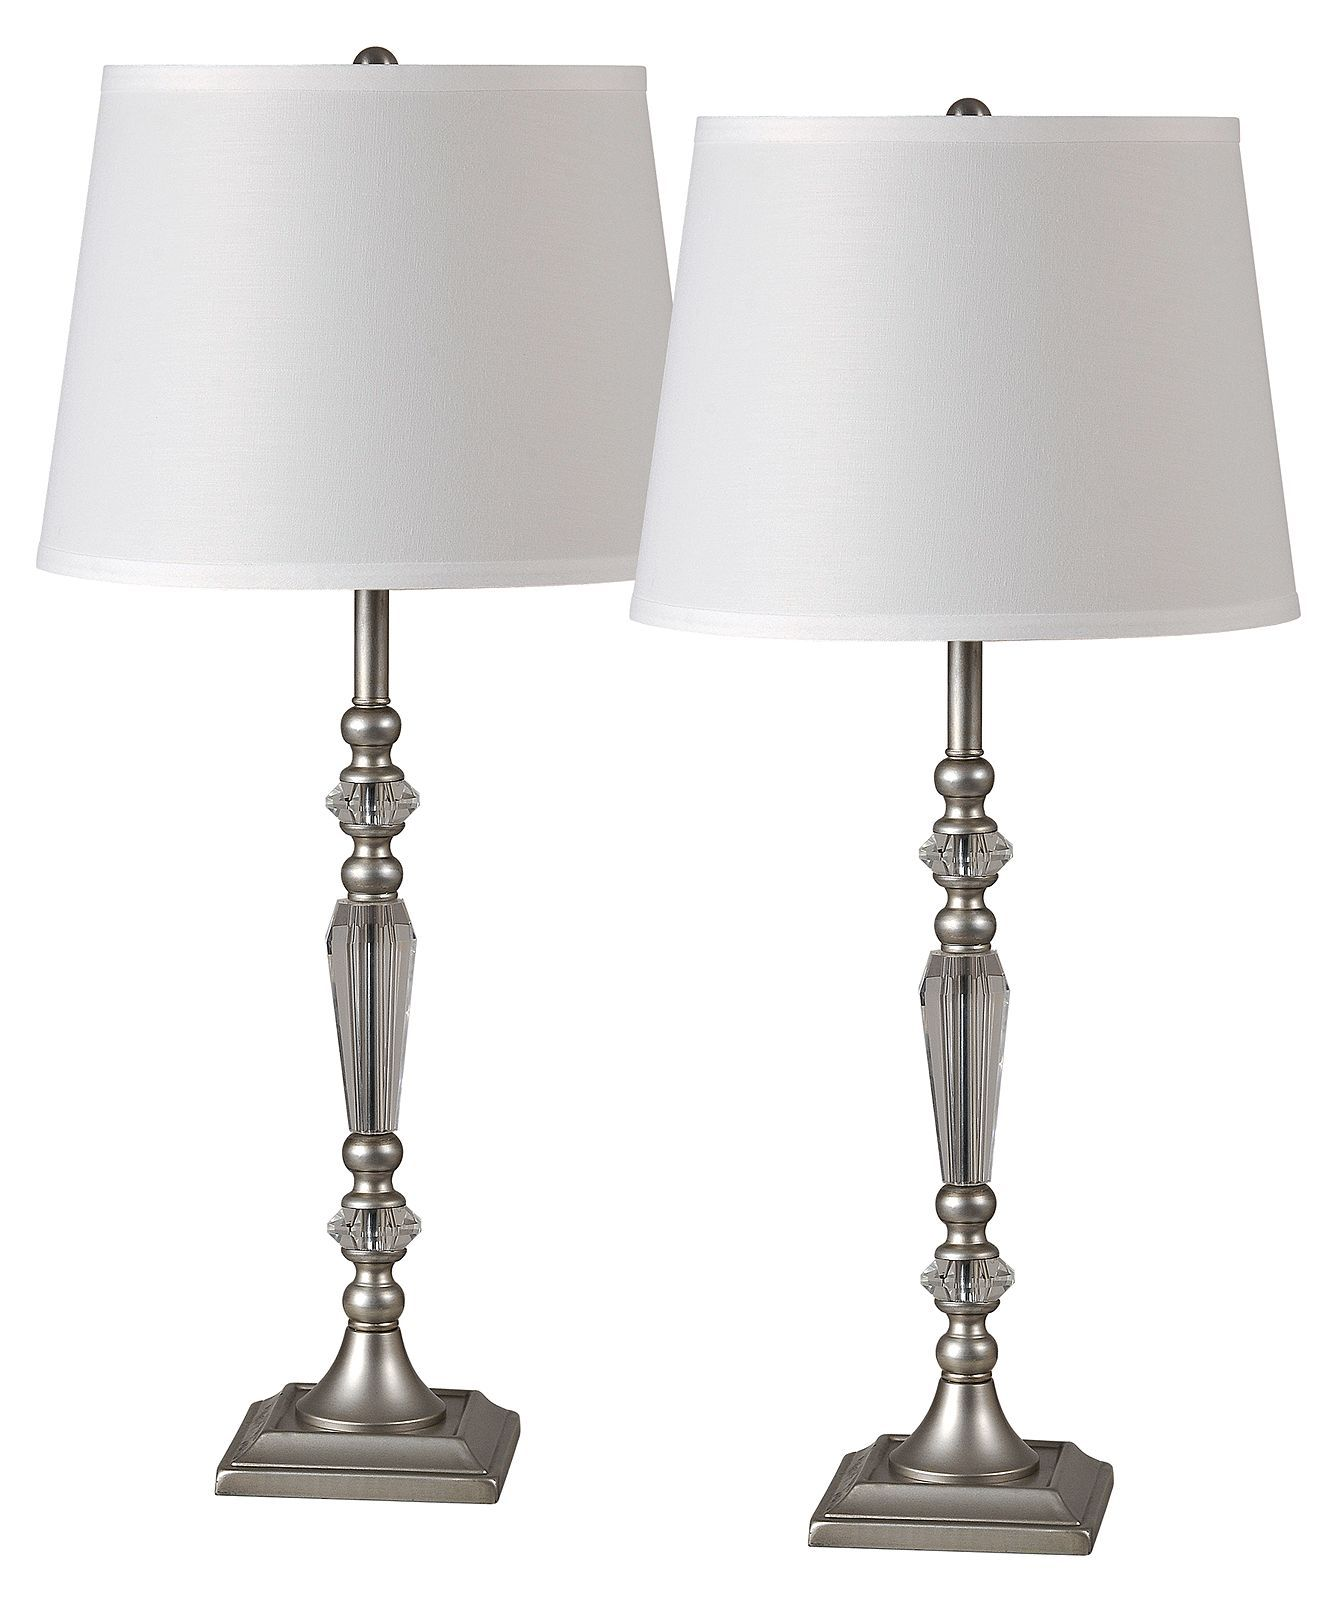 Macys Table Lamps Extraordinary Renwil Table Lamp Set Edna  Shop All Lighting  For The Home Decorating Inspiration